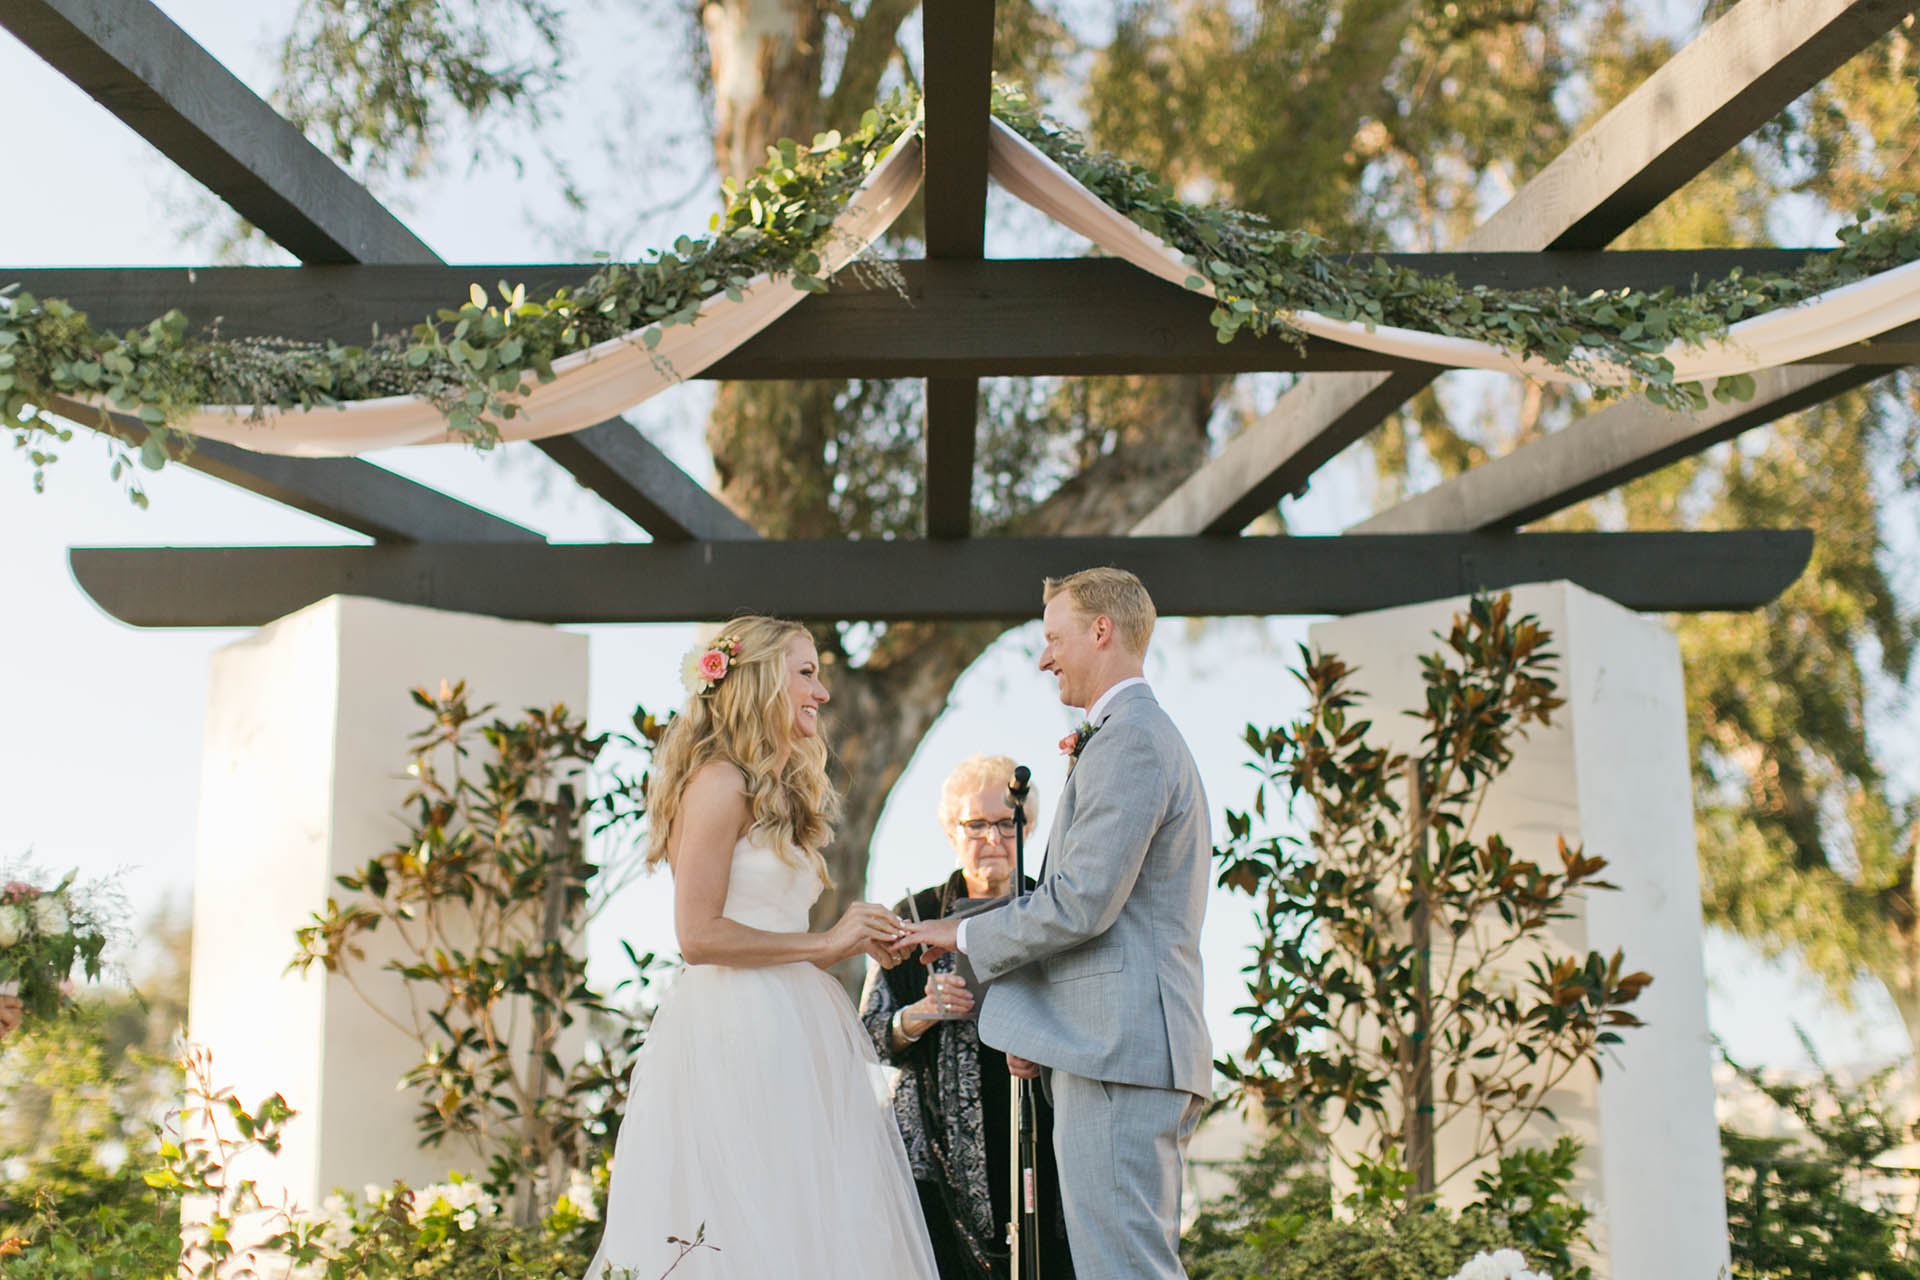 Ceremony pergola can be draped with florals or greenery